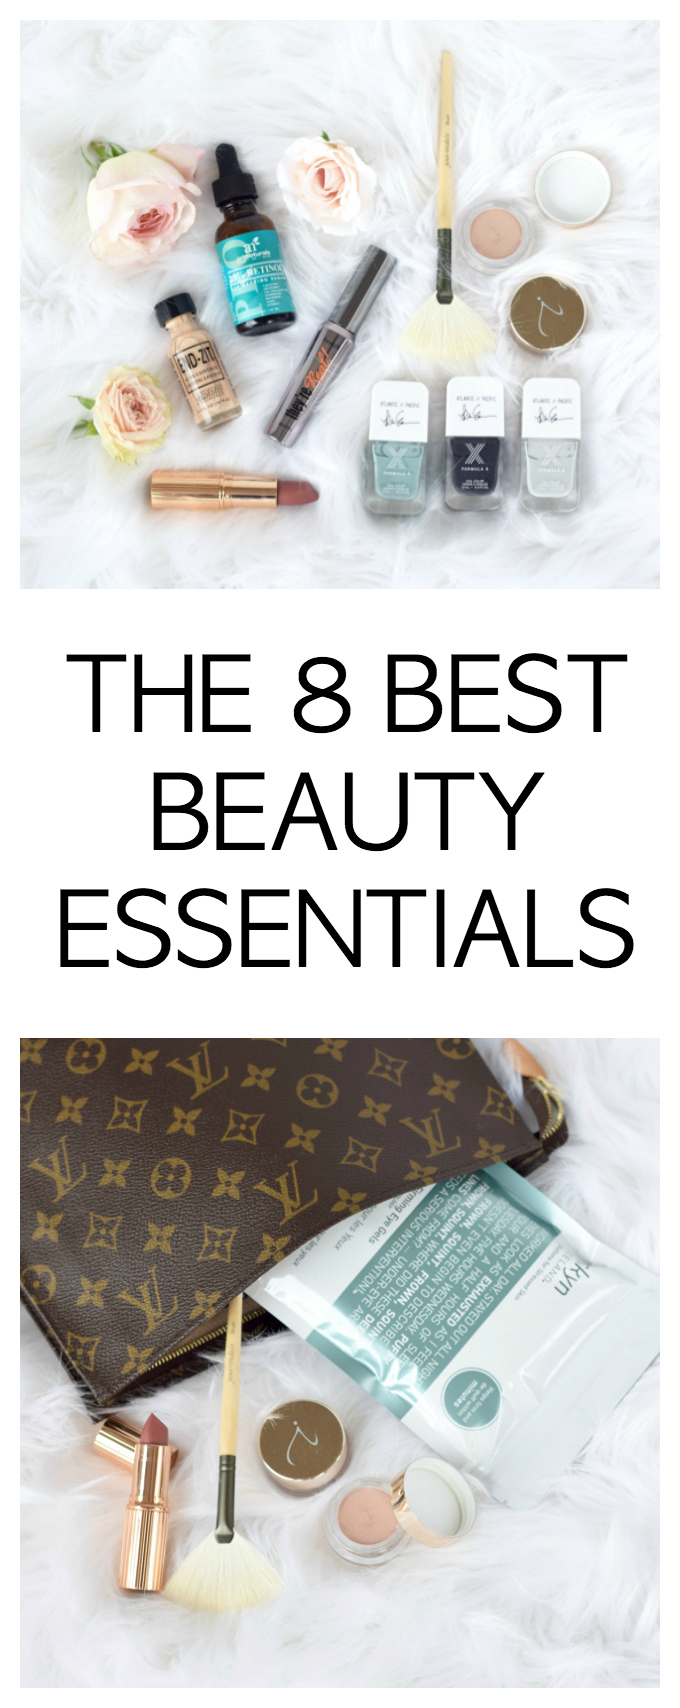 THE 8 BEST BEAUTY ESSENTIALS